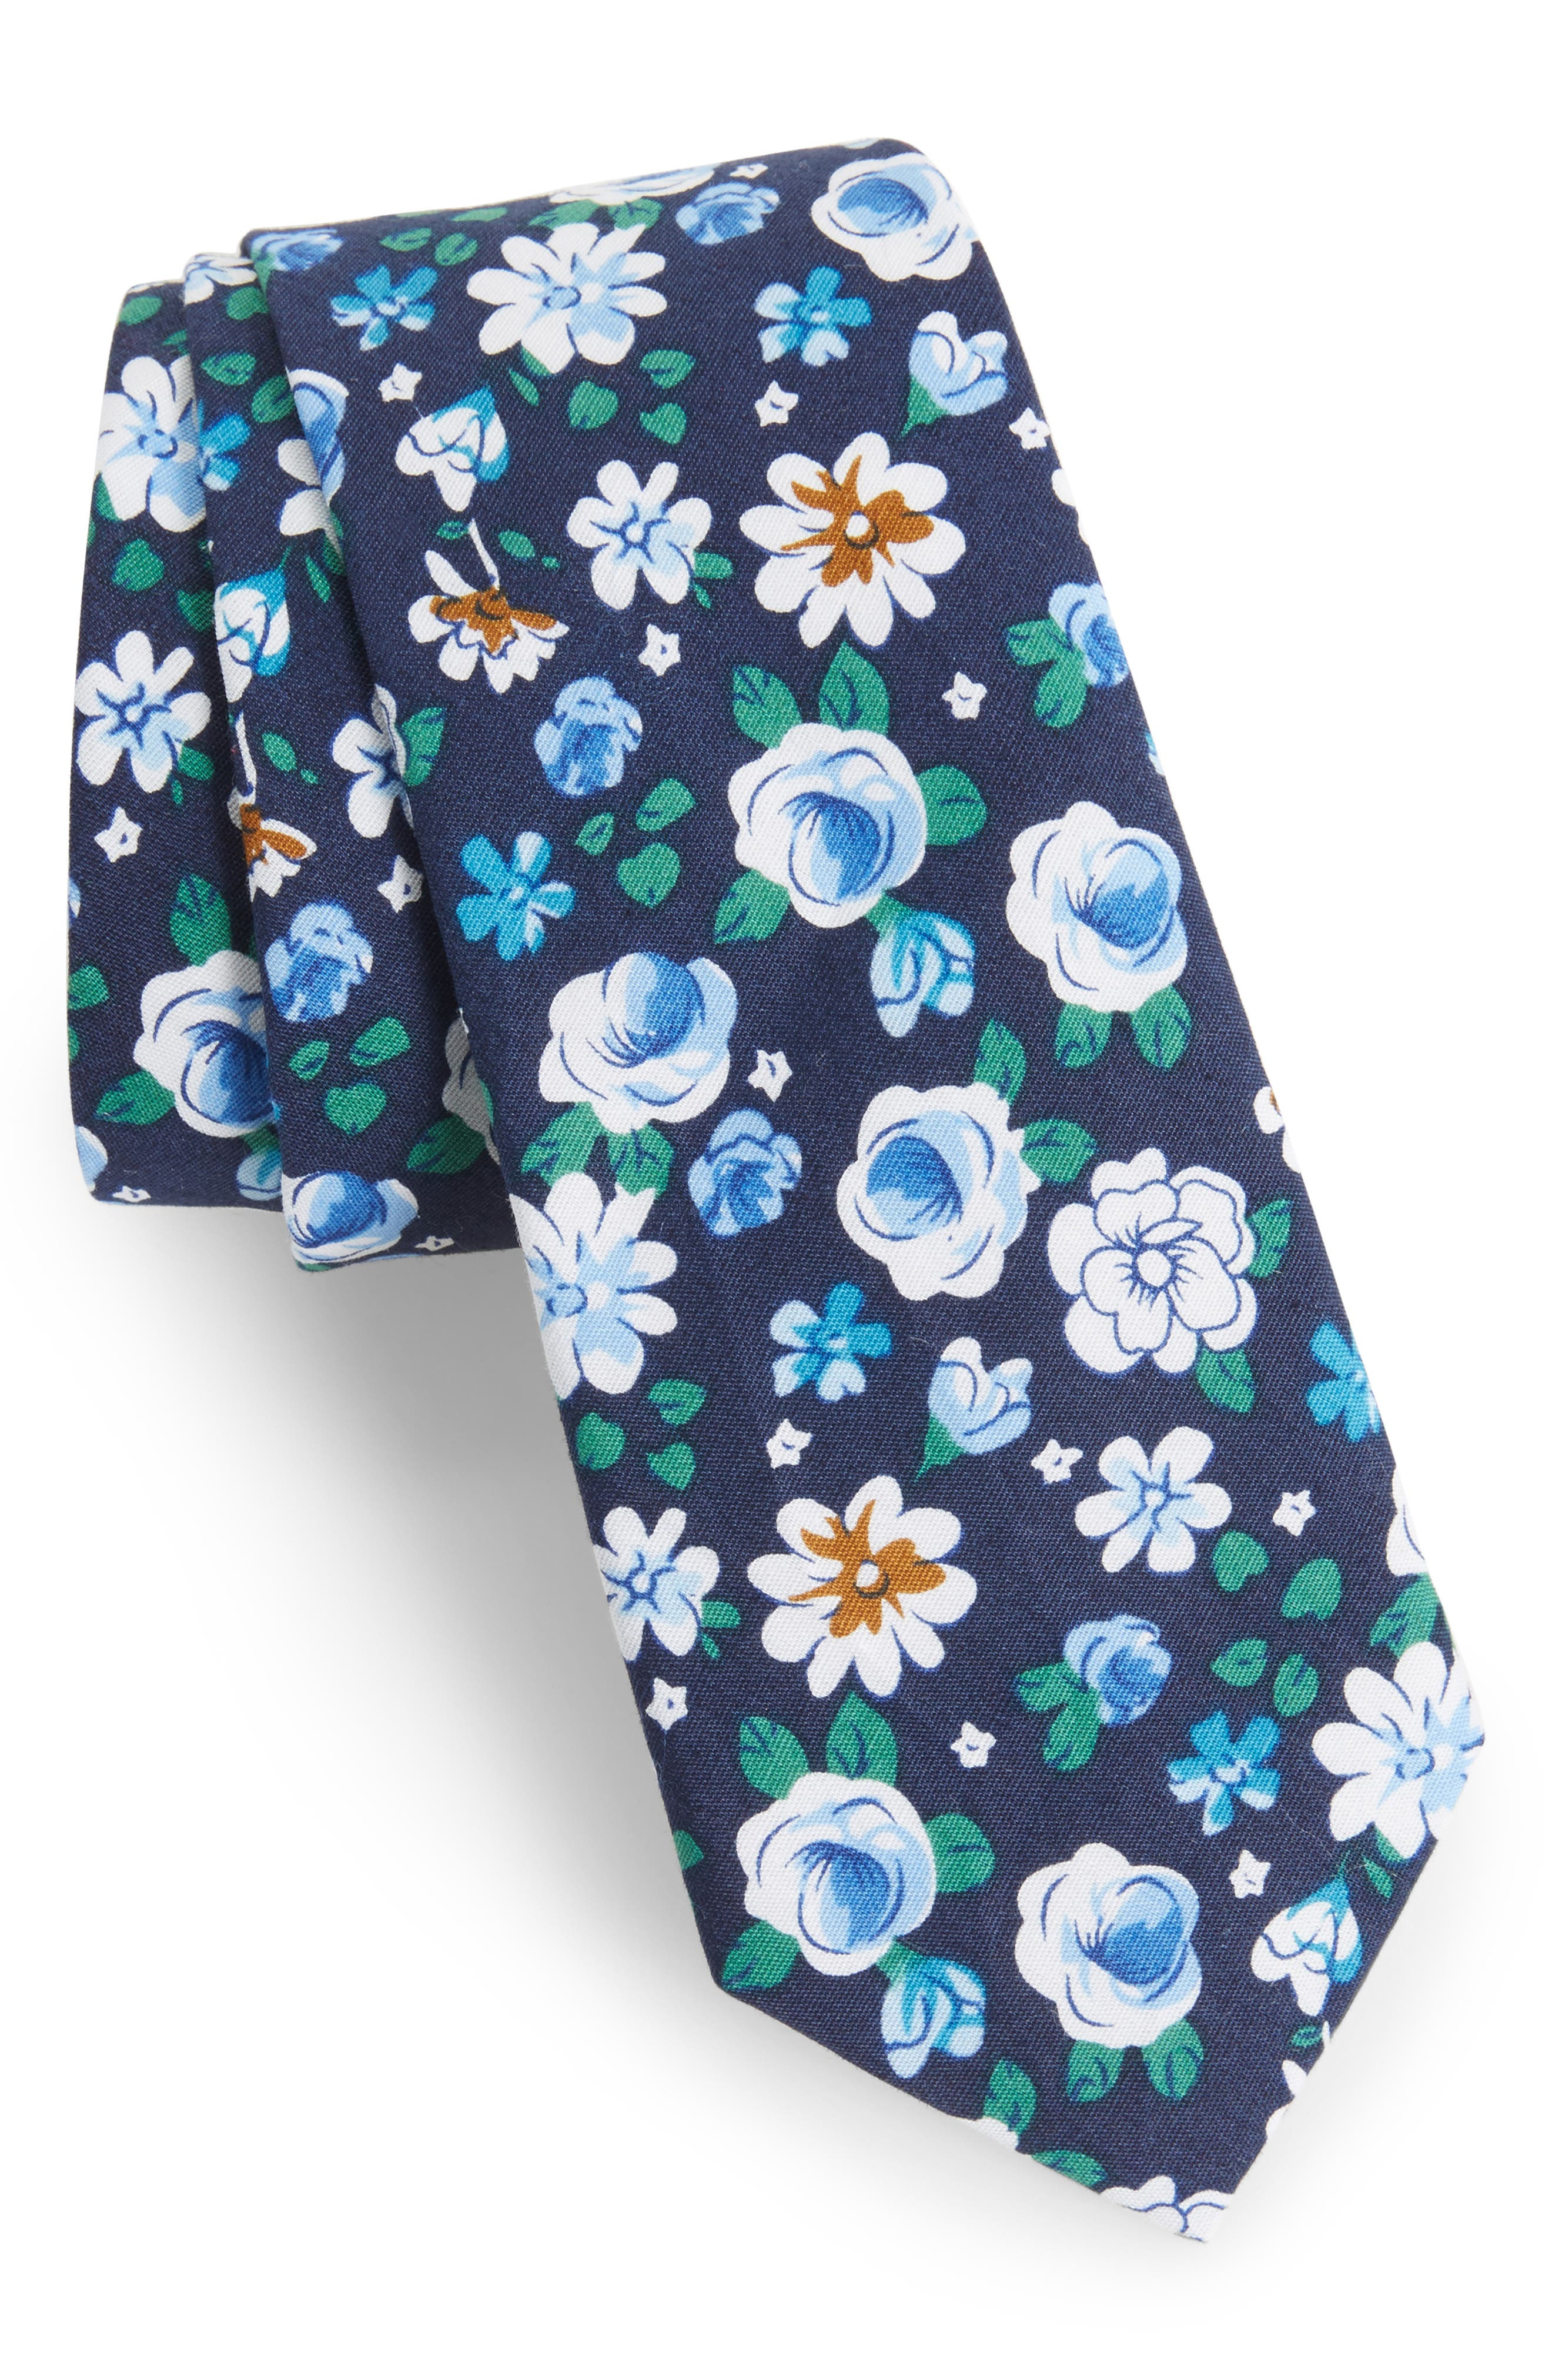 Frenso Floral Cotton Skinny Tie,                             Main thumbnail 1, color,